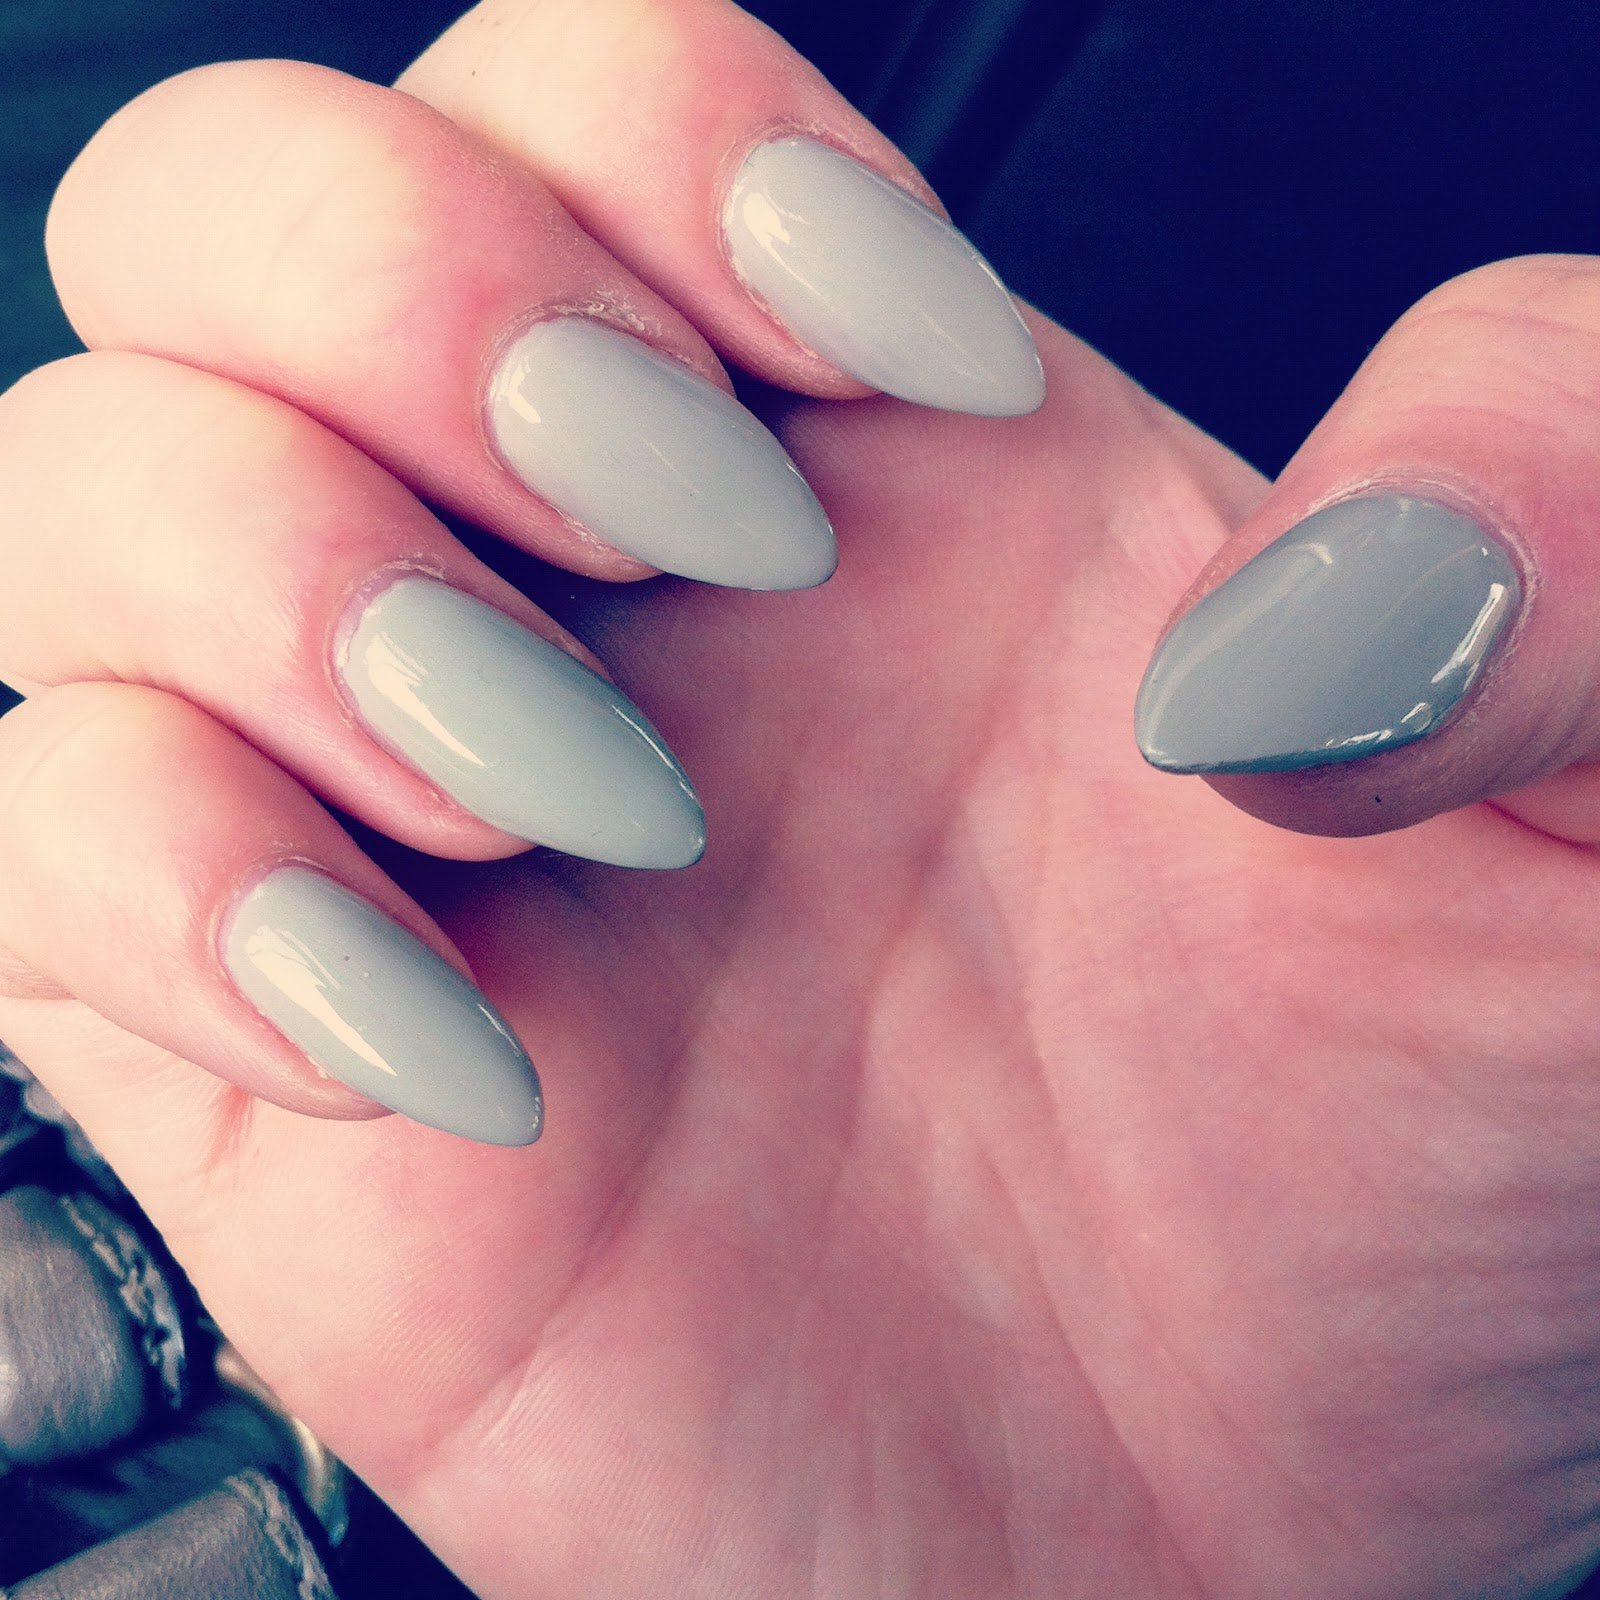 Getting Nailed: Experimenting With Stiletto Nails